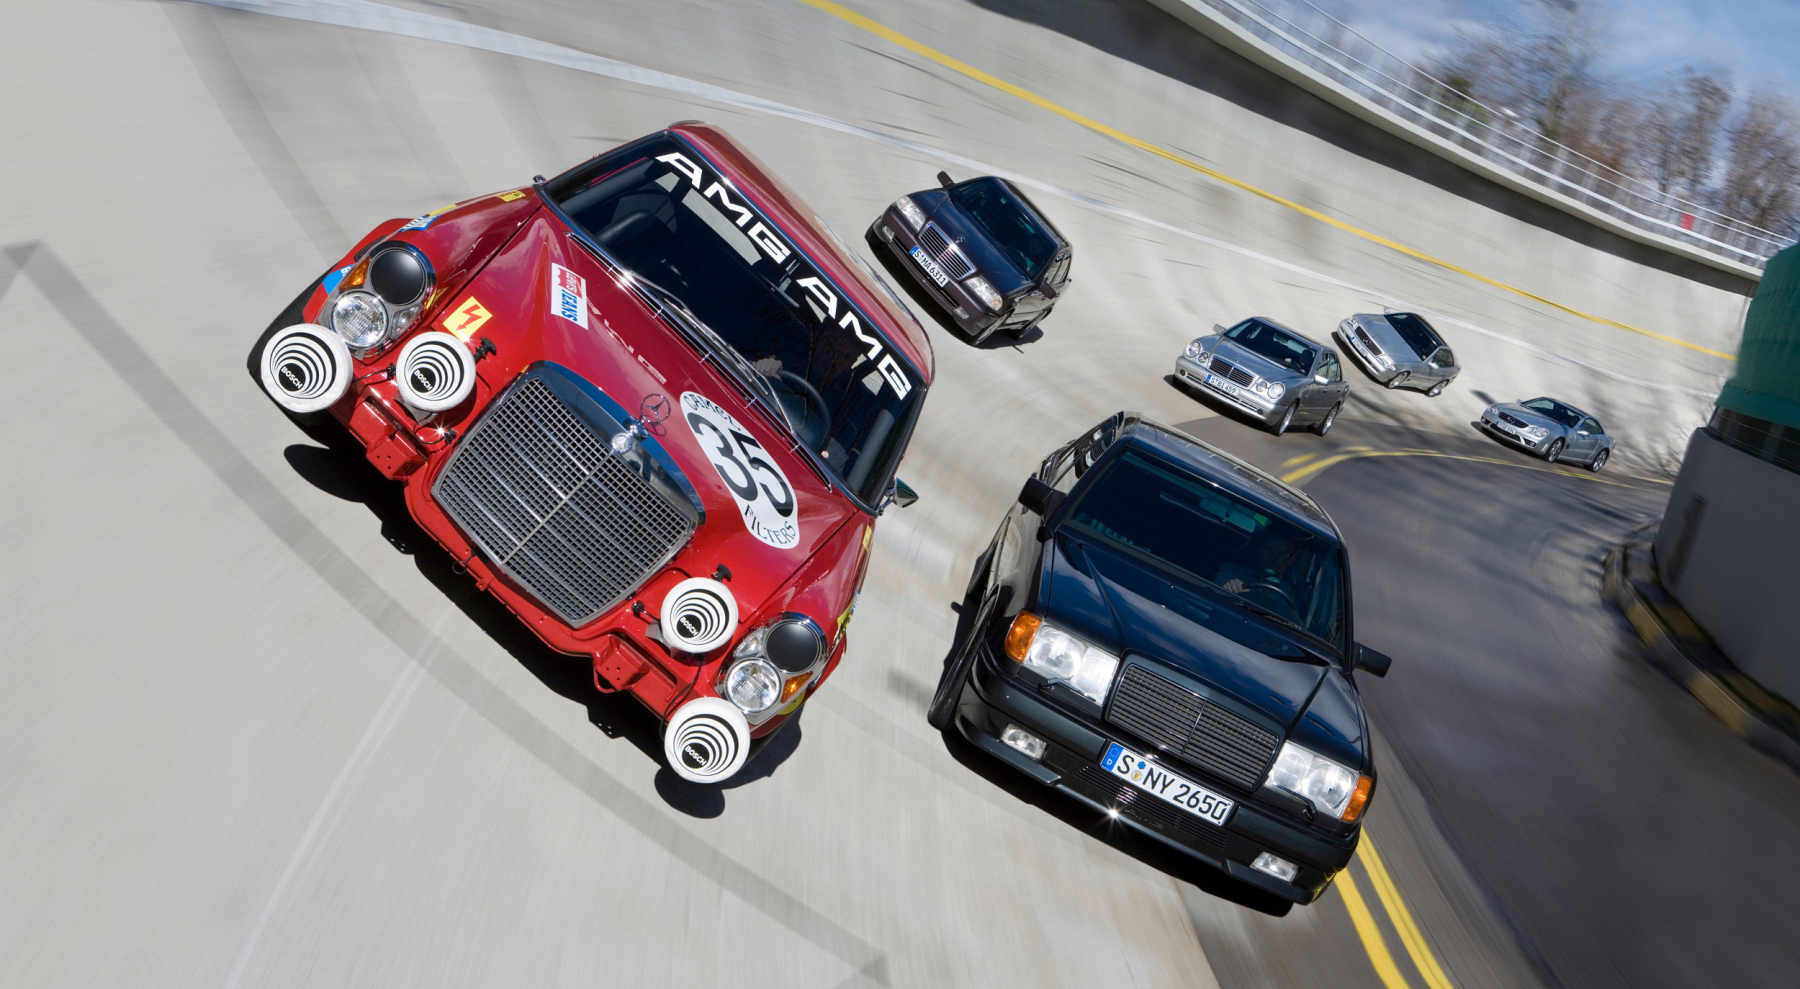 AMG 300 SEL 6.8 racing touring car based on the Mercedes-Benz 300 SEL 6.3 (W 109) luxury saloon, detailed reconstruction from 2006. The photo shows the racing touring car together with other high-performance vehicles from AMG history on the high-bank curve of the test track in Untertürkheim. Photo from 2007.